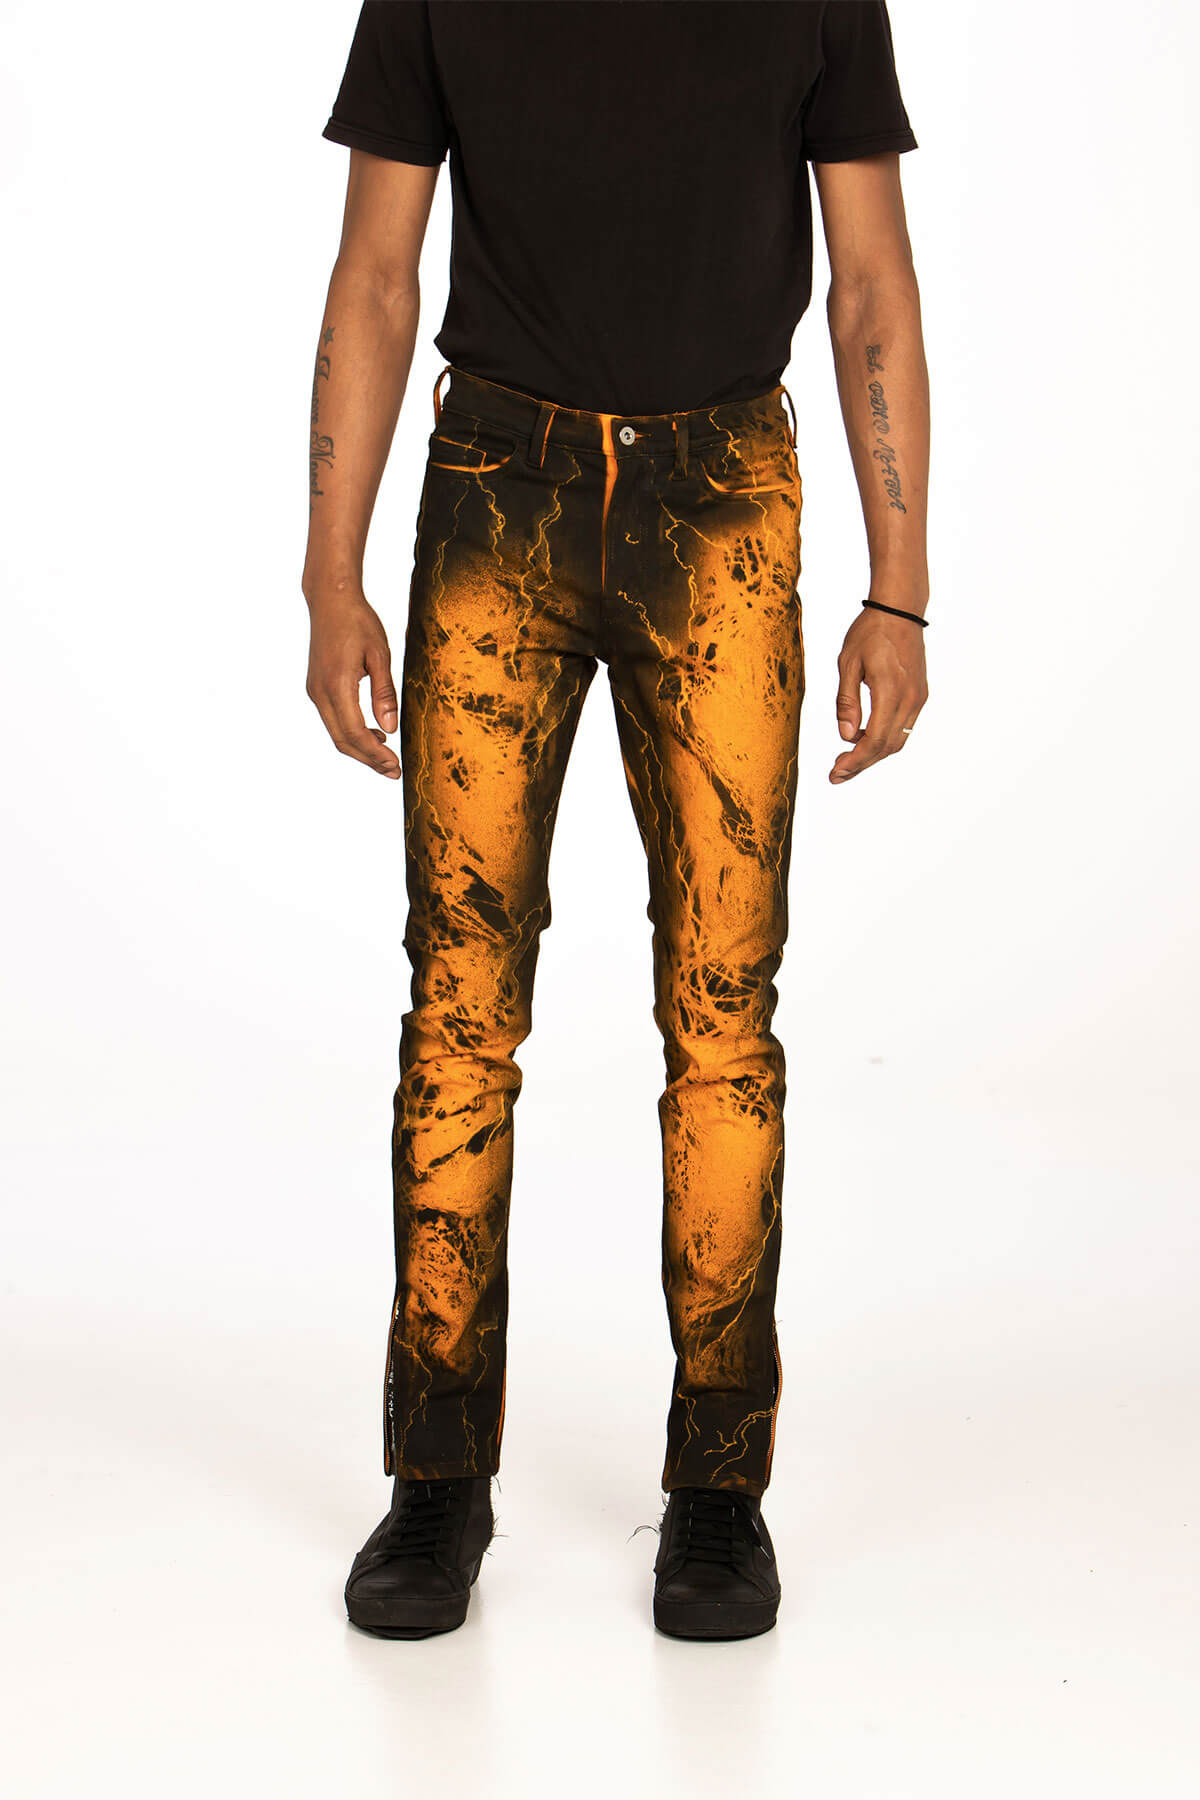 CRIXUS JEANS – HAND SPRAY PAINTED/ CRAFTED